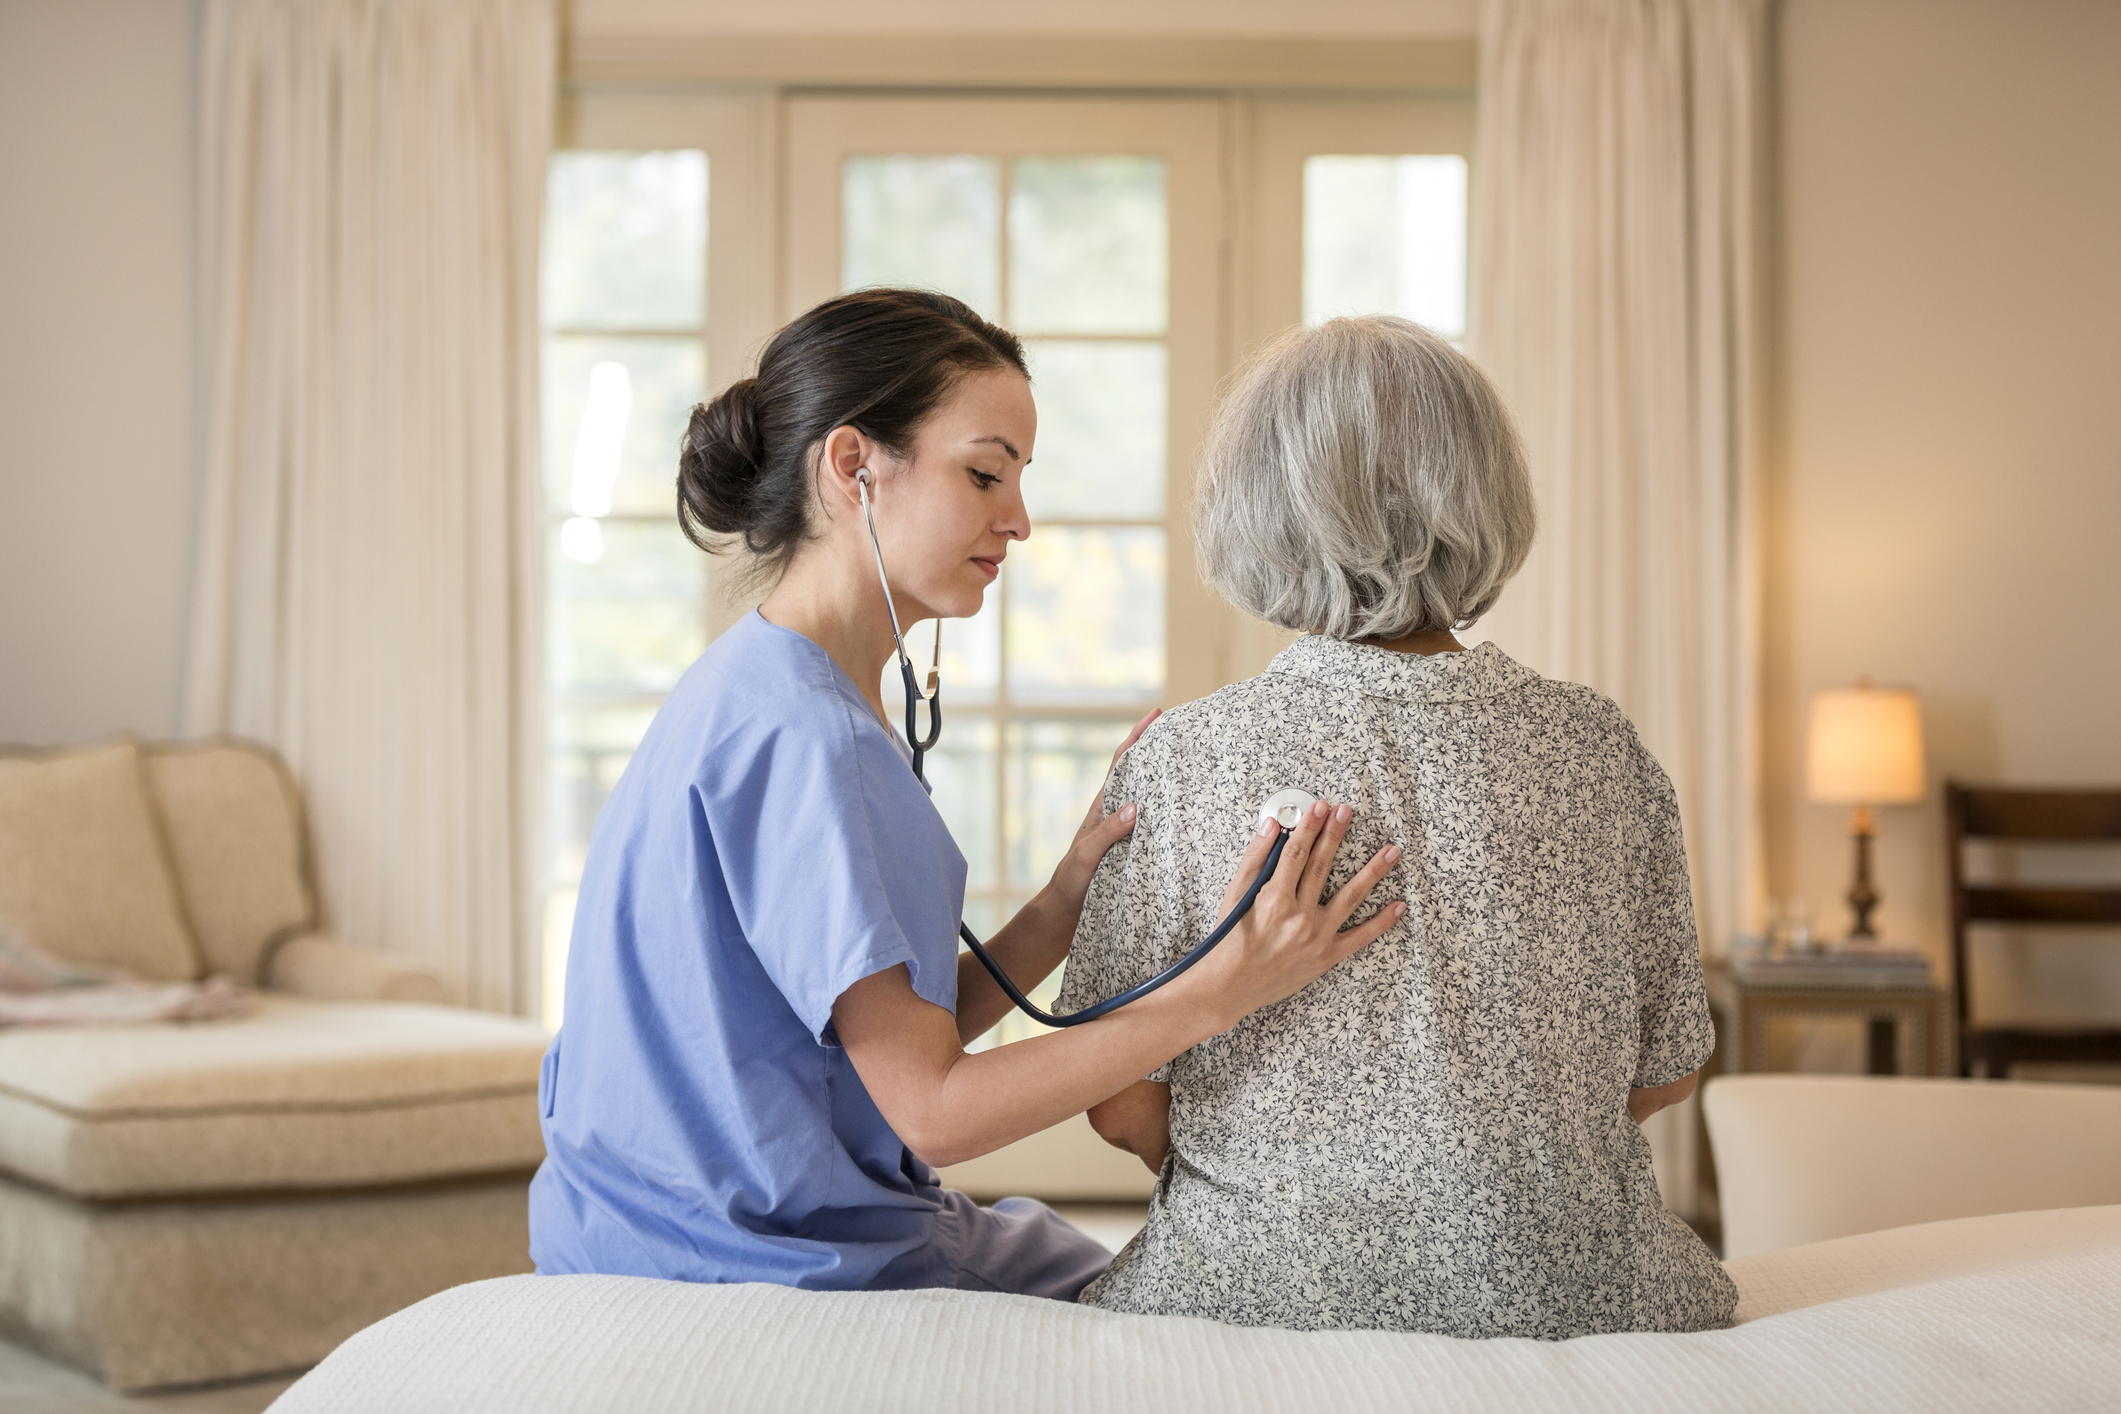 Preventing Adverse Events in Home Health